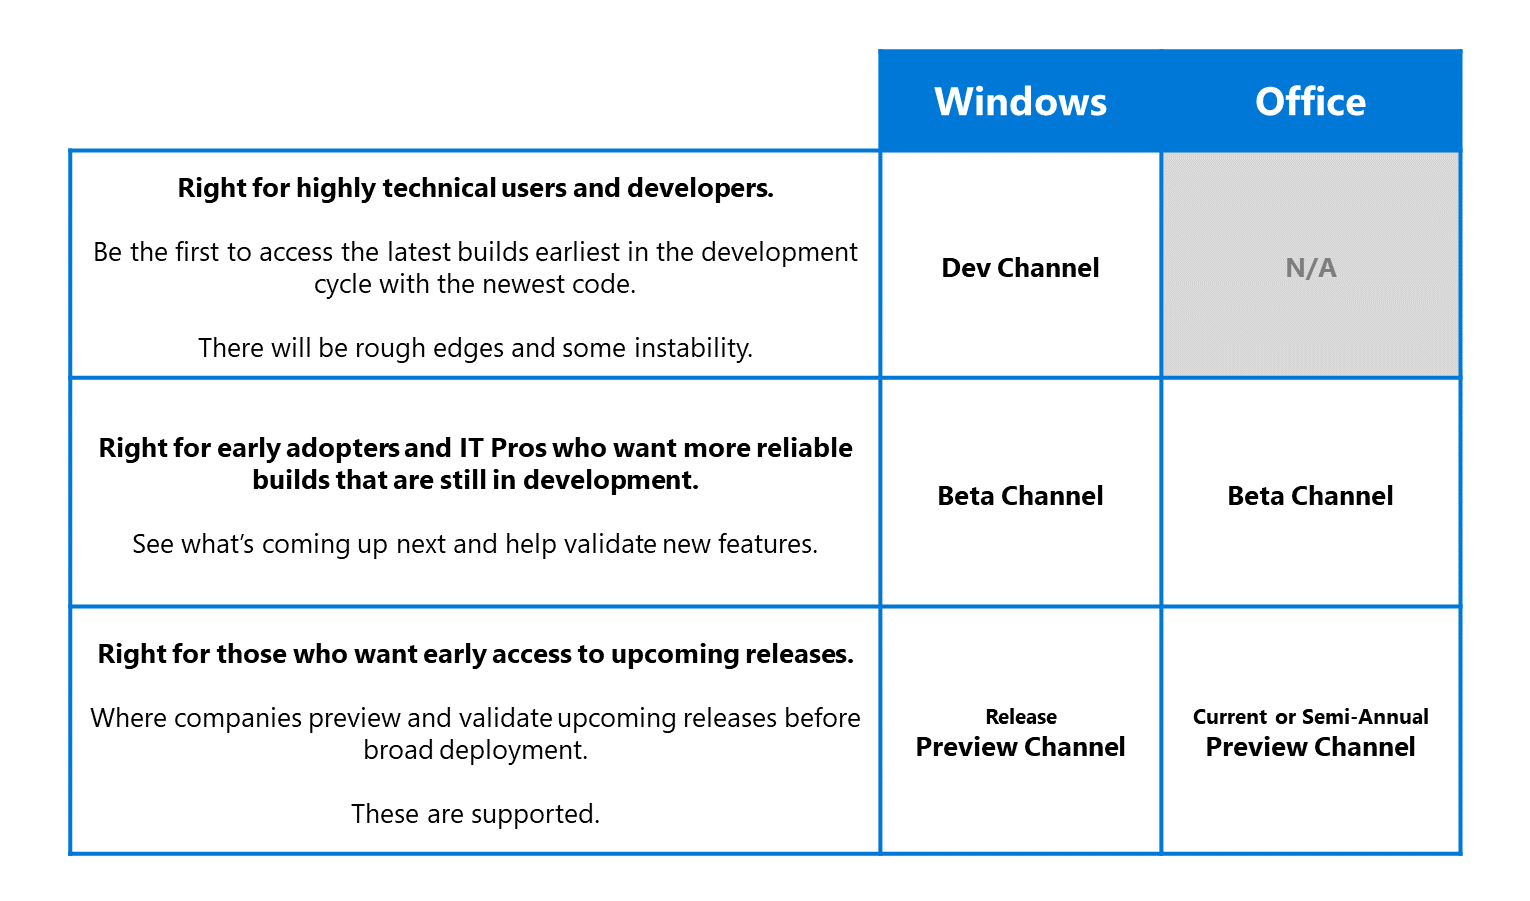 New windows insider channels to replace existing rings, with bigger focus on quality - onmsft. Com - june 15, 2020